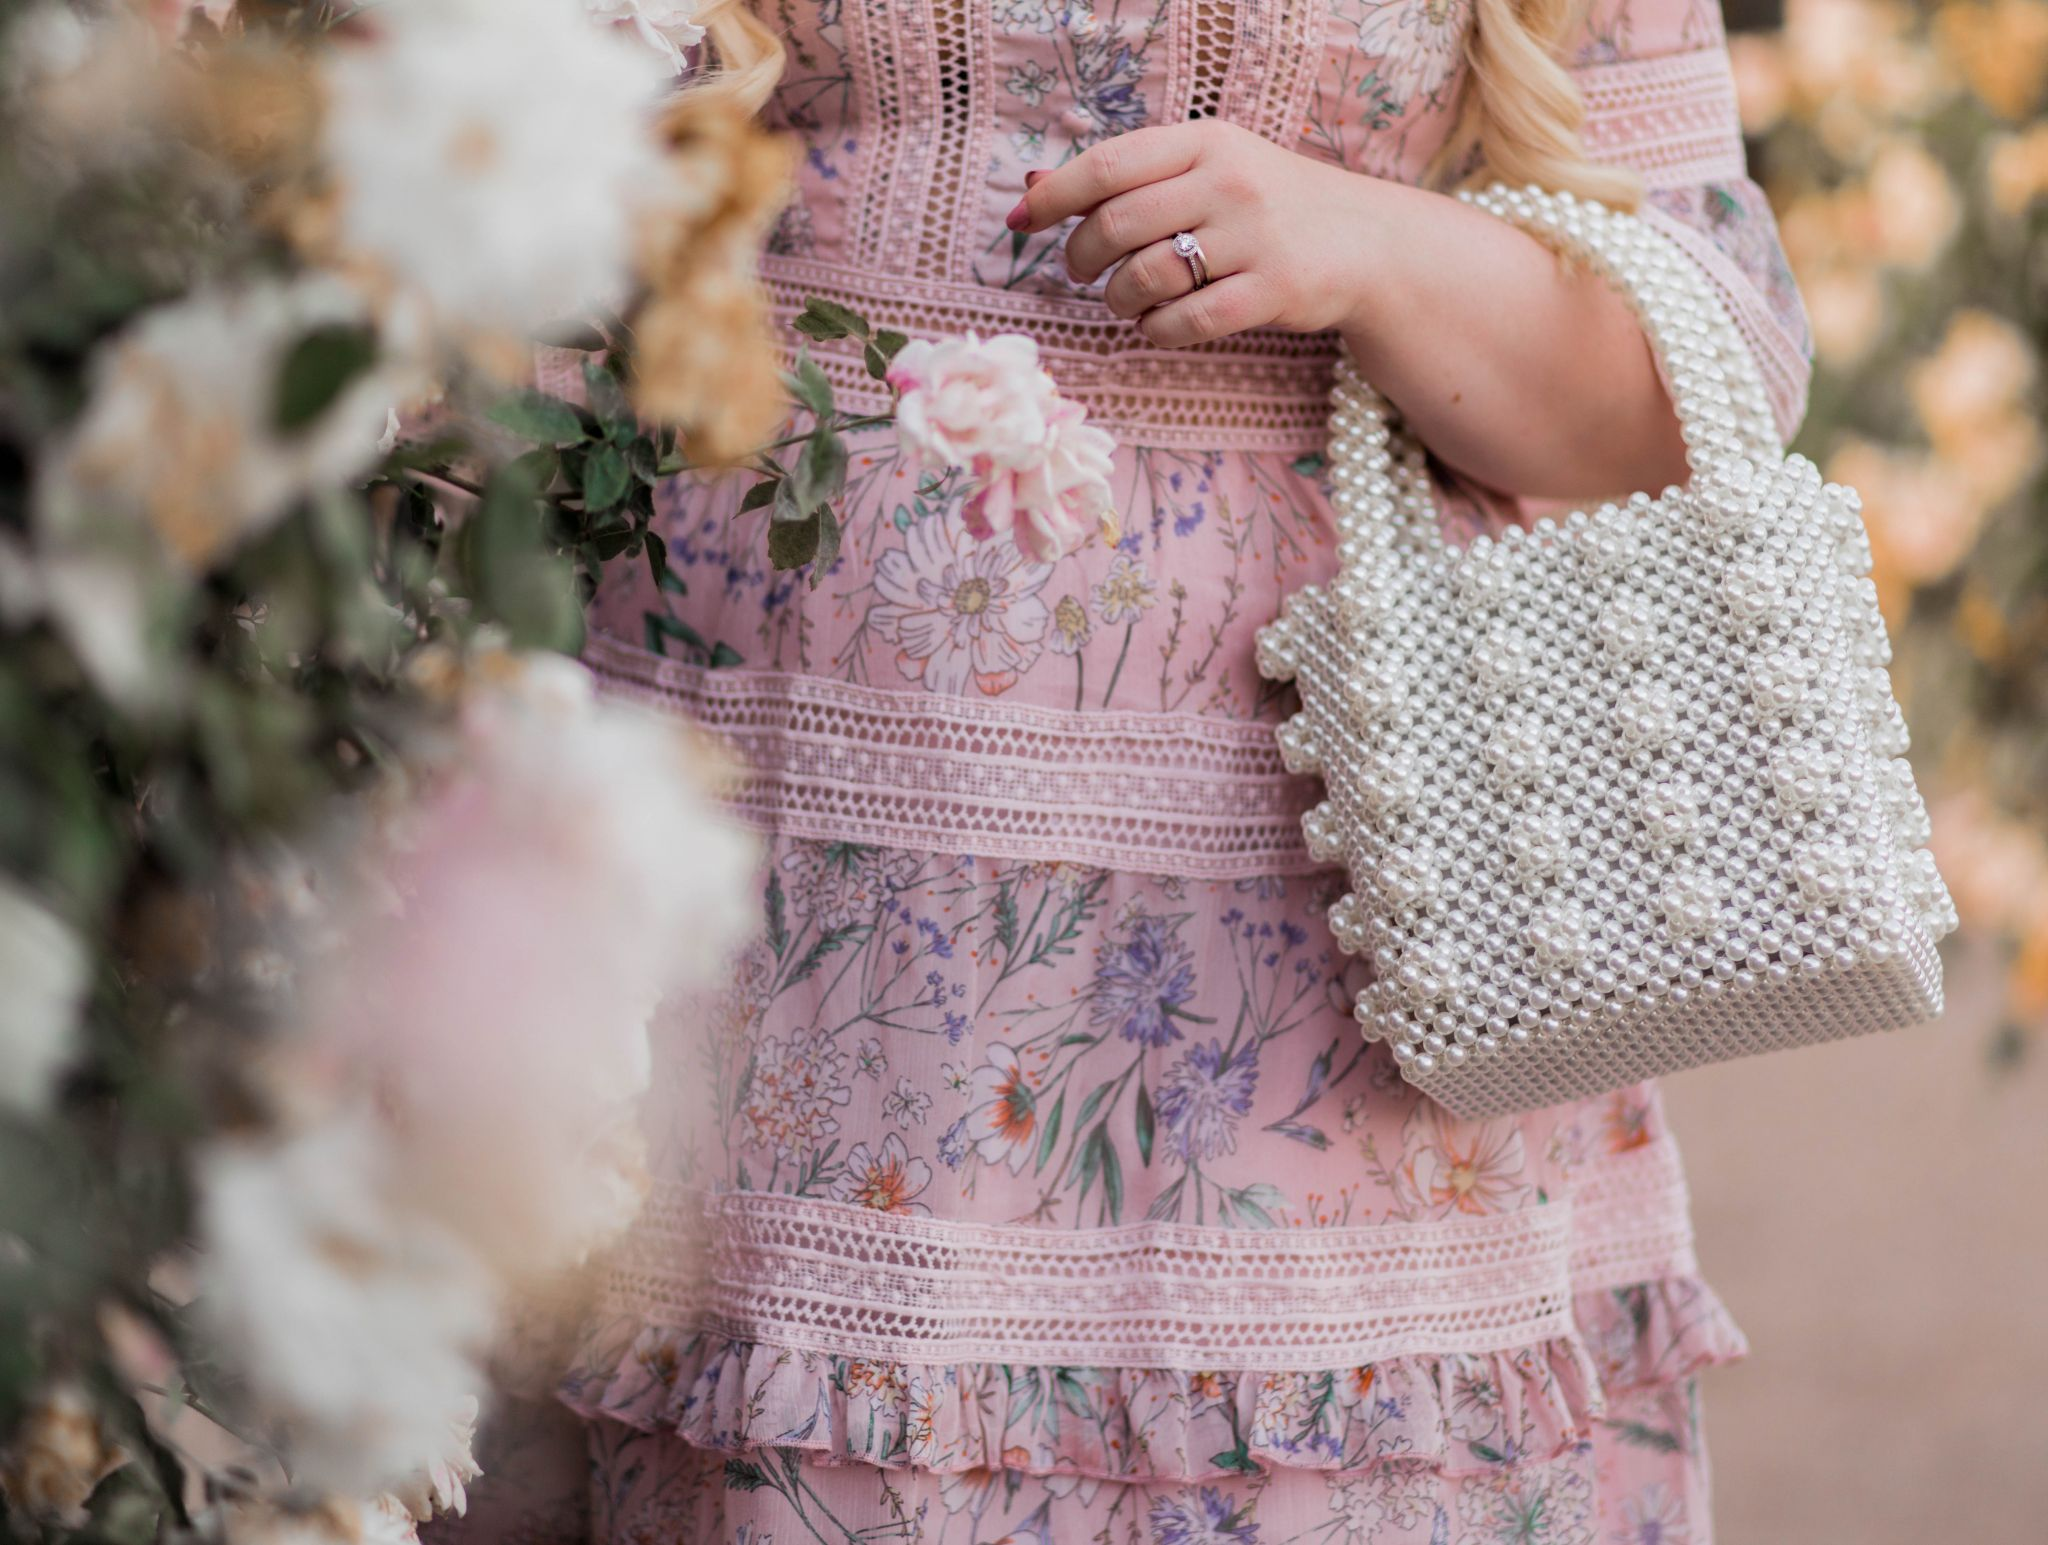 Fashion Blogger Elizabeth Hugen of Lizzie in Lace shares her girly handbag collection including this pearl handbag